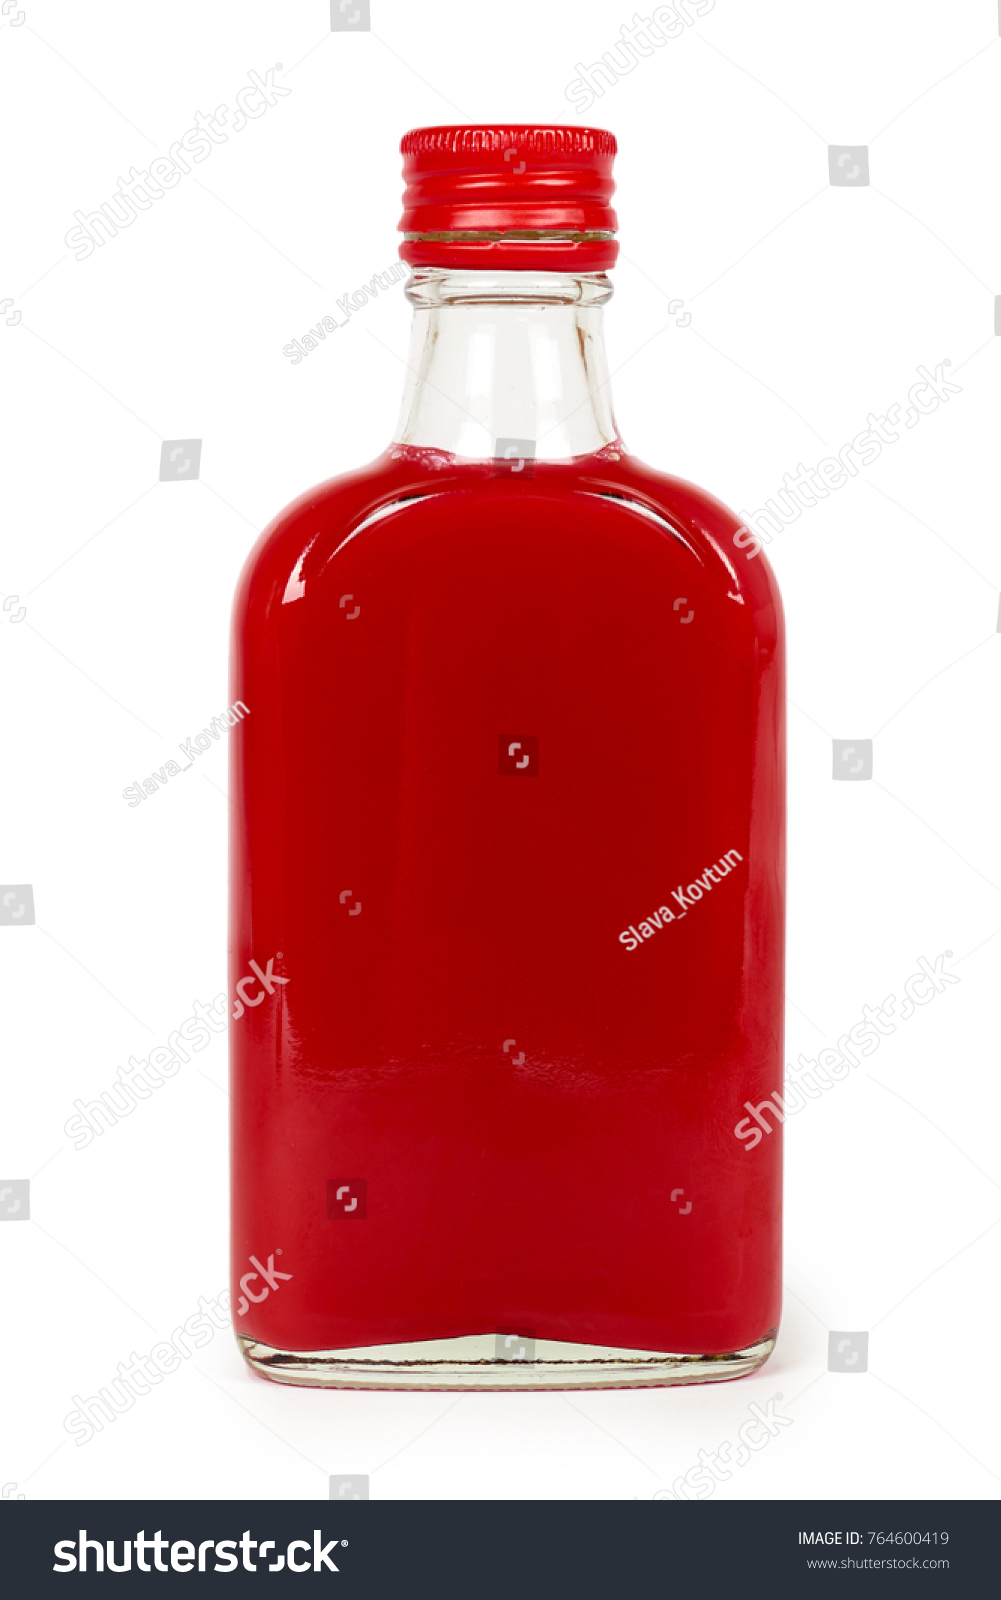 Home mini-bar: tincture on cranberries on alcohol